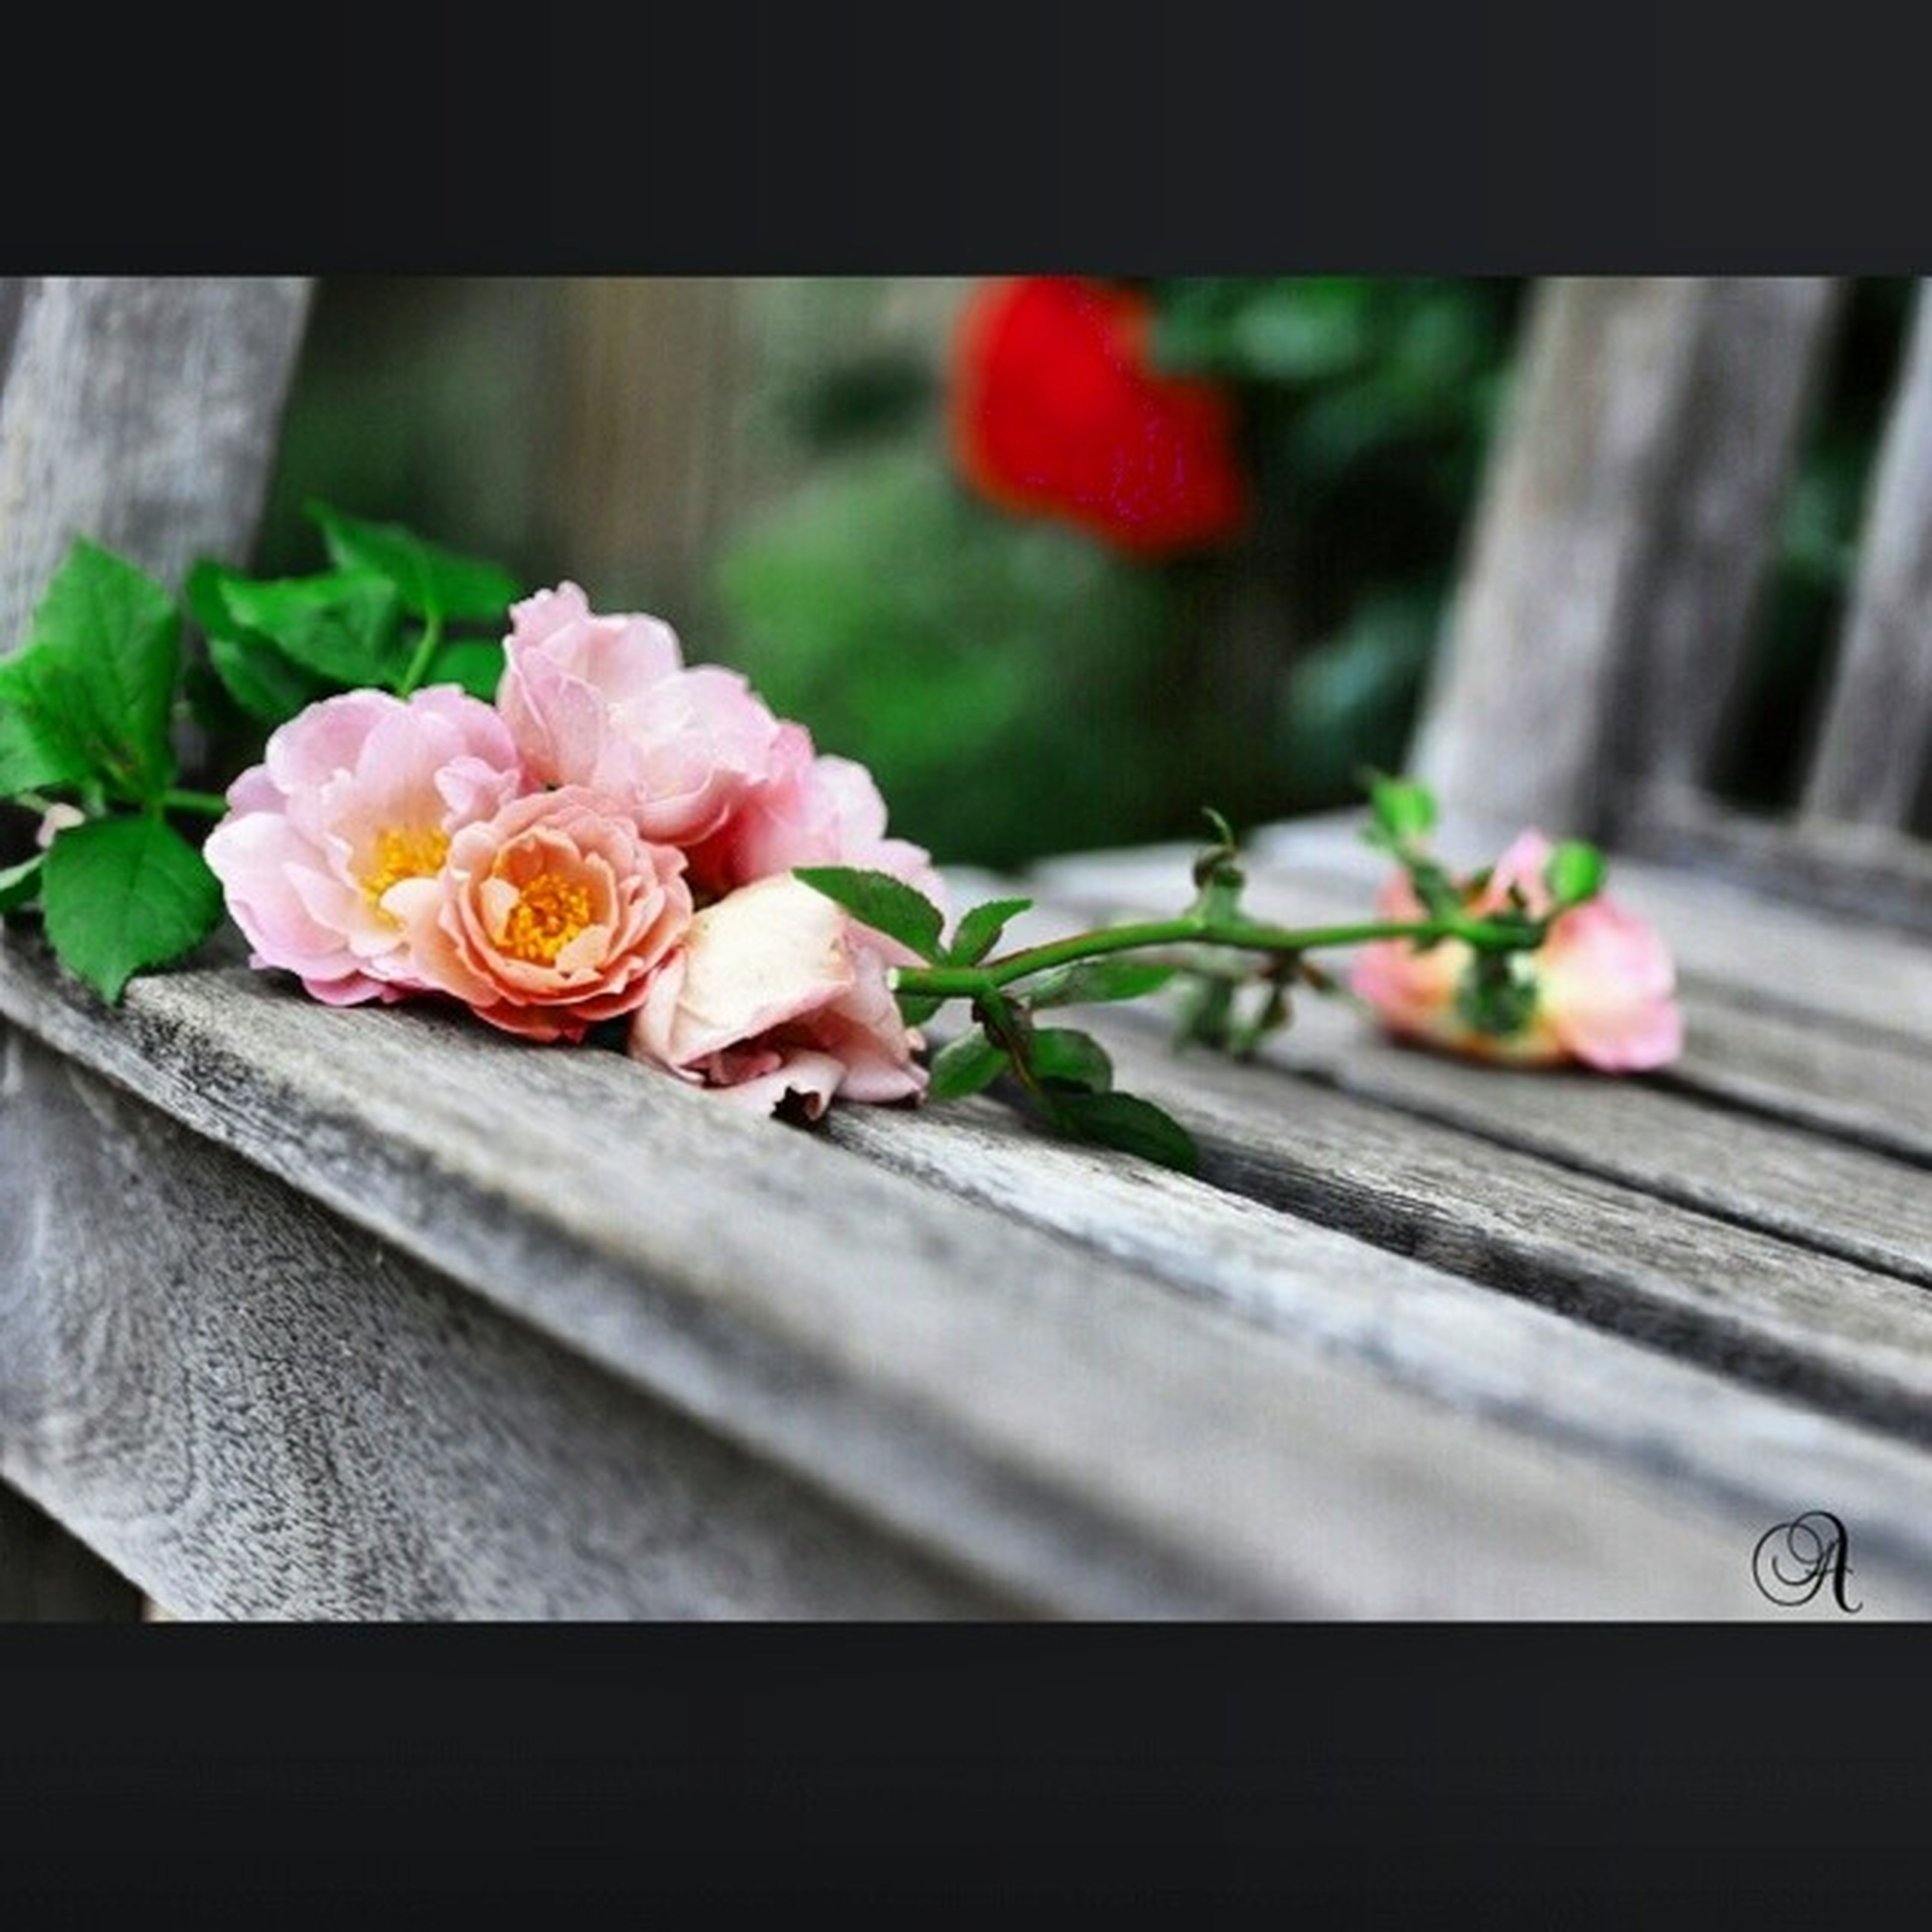 flower, petal, fragility, freshness, close-up, flower head, pink color, focus on foreground, wood - material, plant, indoors, growth, beauty in nature, nature, selective focus, rose - flower, vase, potted plant, wooden, flower pot